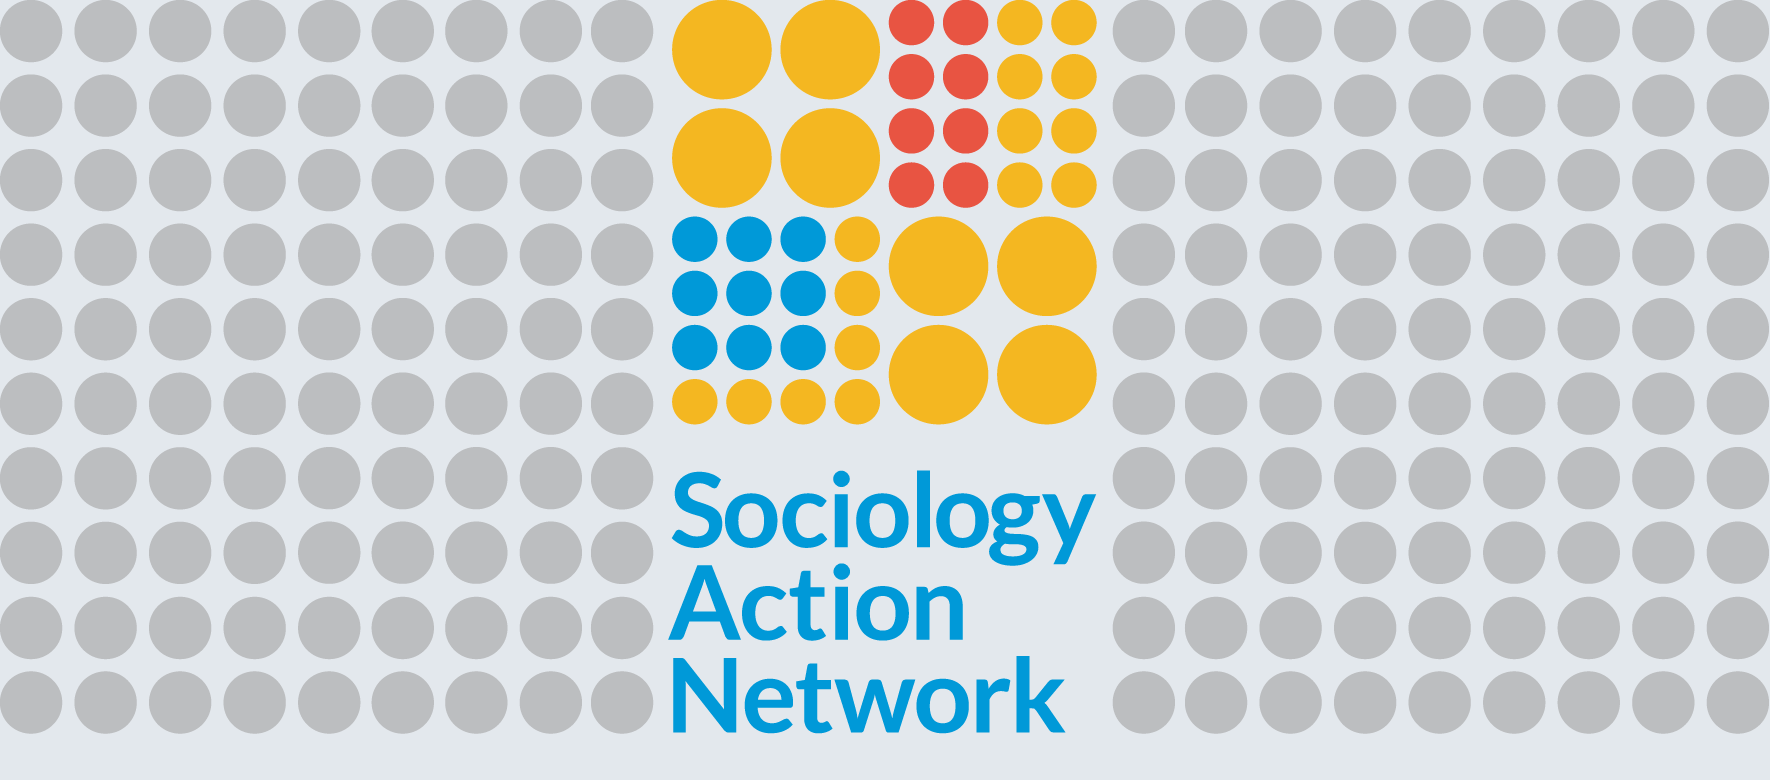 Sociology Action Network logo on background of grey dots